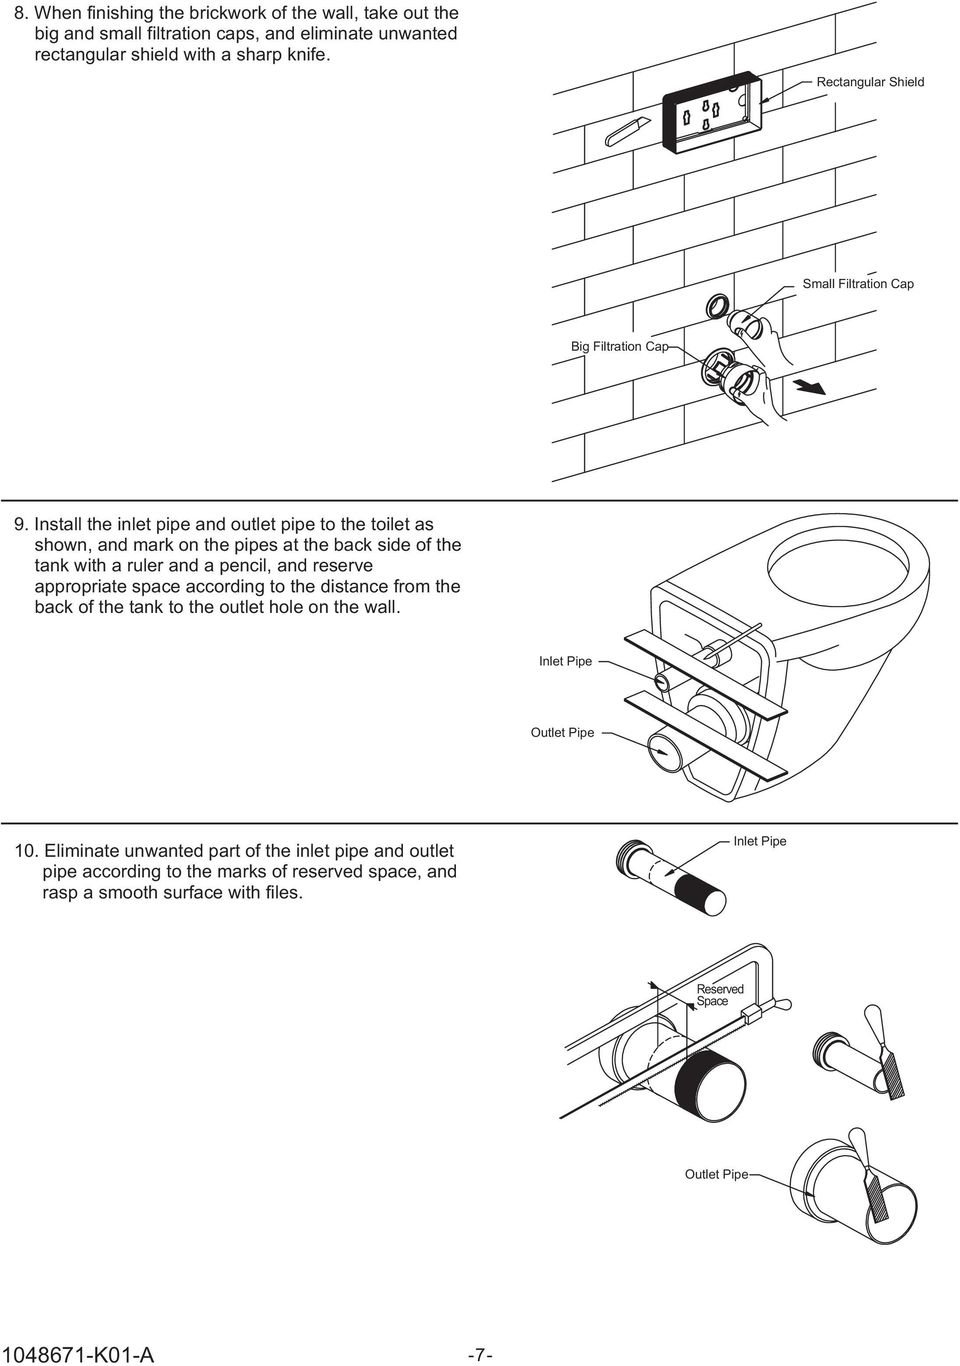 Install the inlet pipe and outlet pipe to the toilet as shown, and mark on the pipes at the back side of the tank with a ruler and a pencil, and reserve appropriate